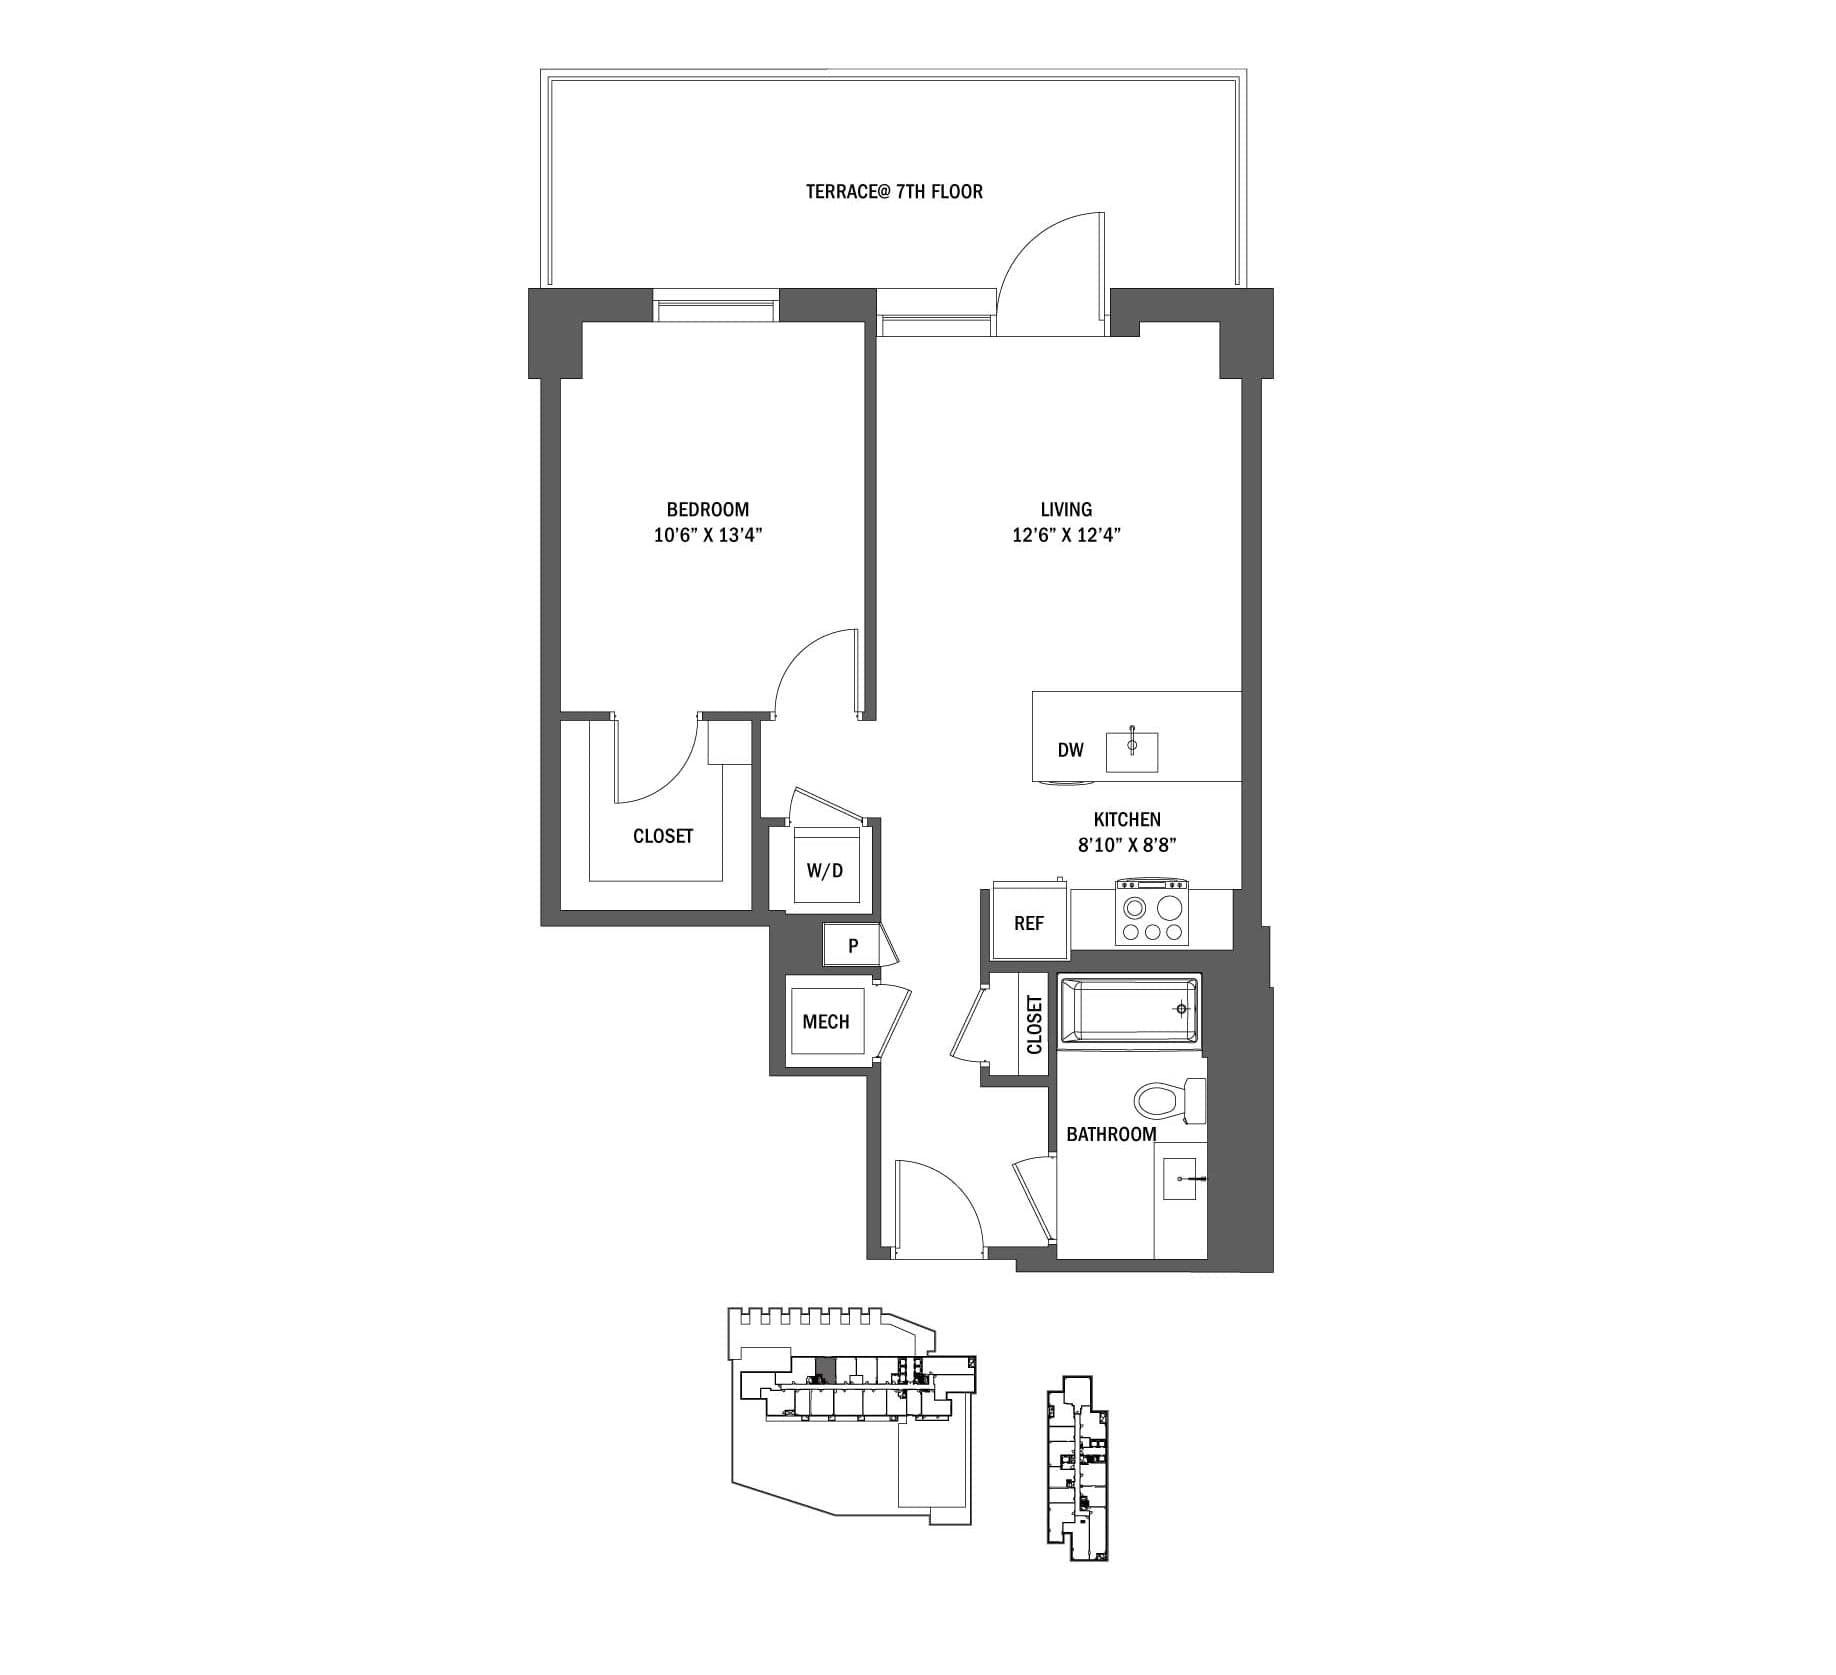 1 Bed 1 Bath Junior A61 Bedroom, 685 Sq Ft